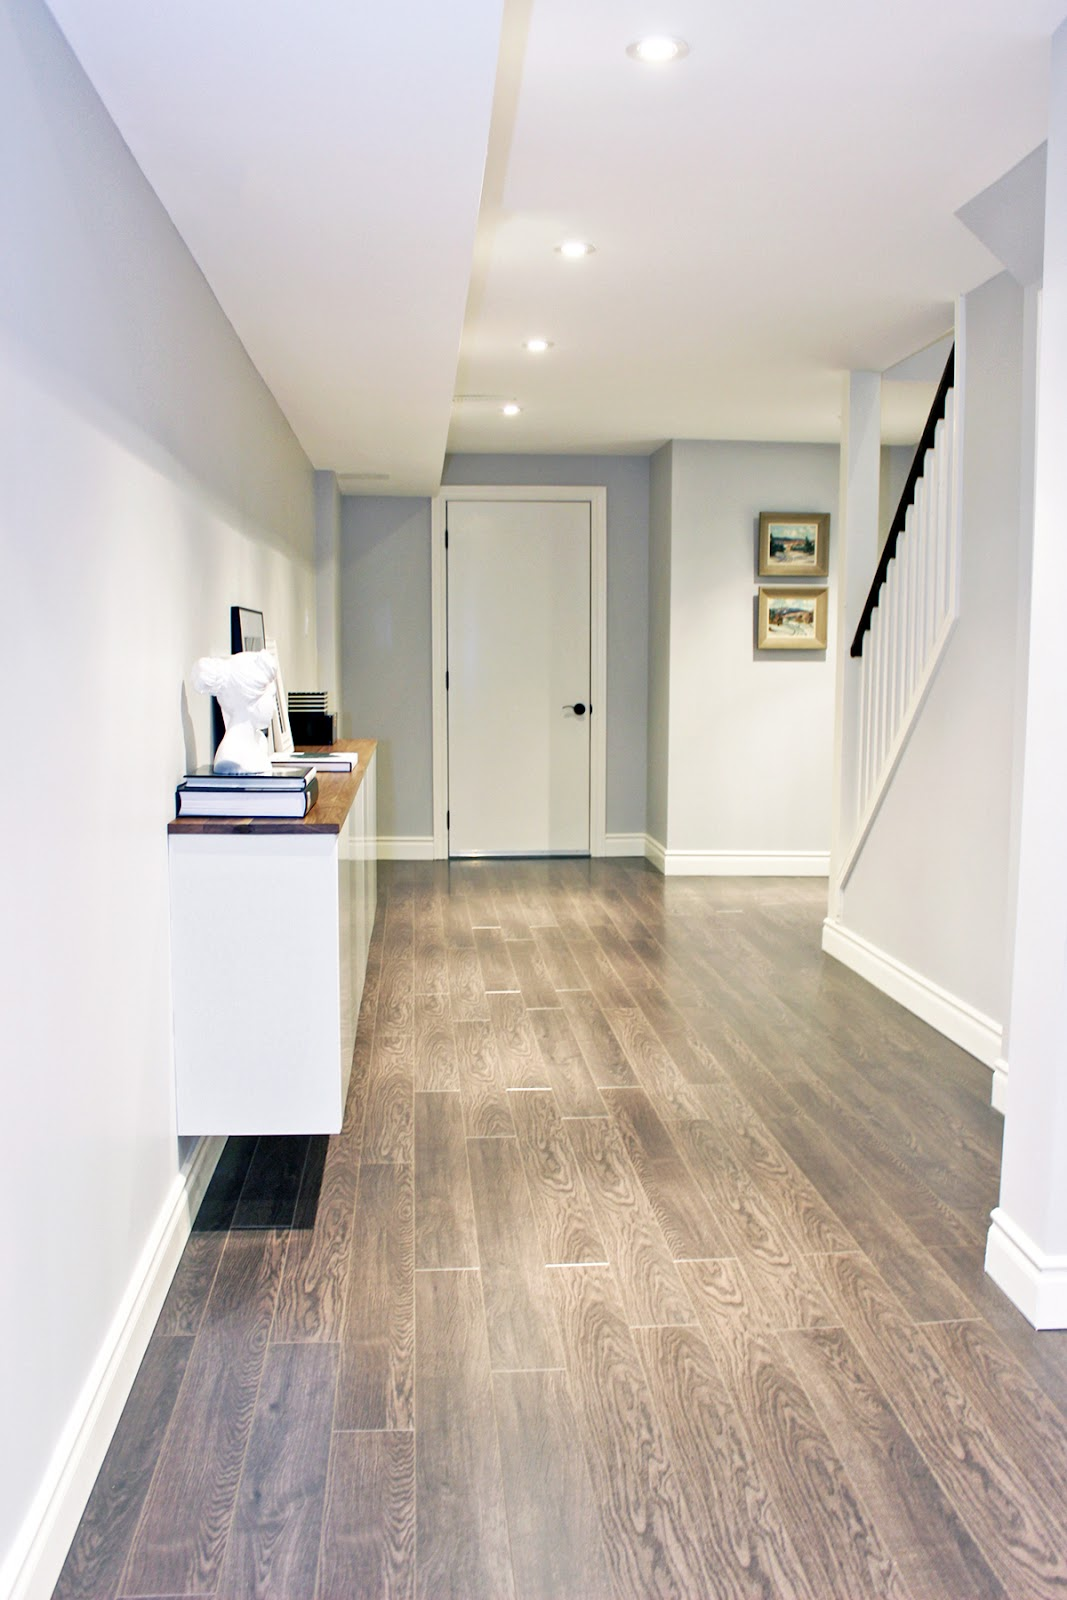 In the past replacing the flooring in a home would have been very expensive. Fortunately this is no longer the case. The emergence of new materials and ... & AM Dolce Vita: Why Laminate Flooring is a Good Choice